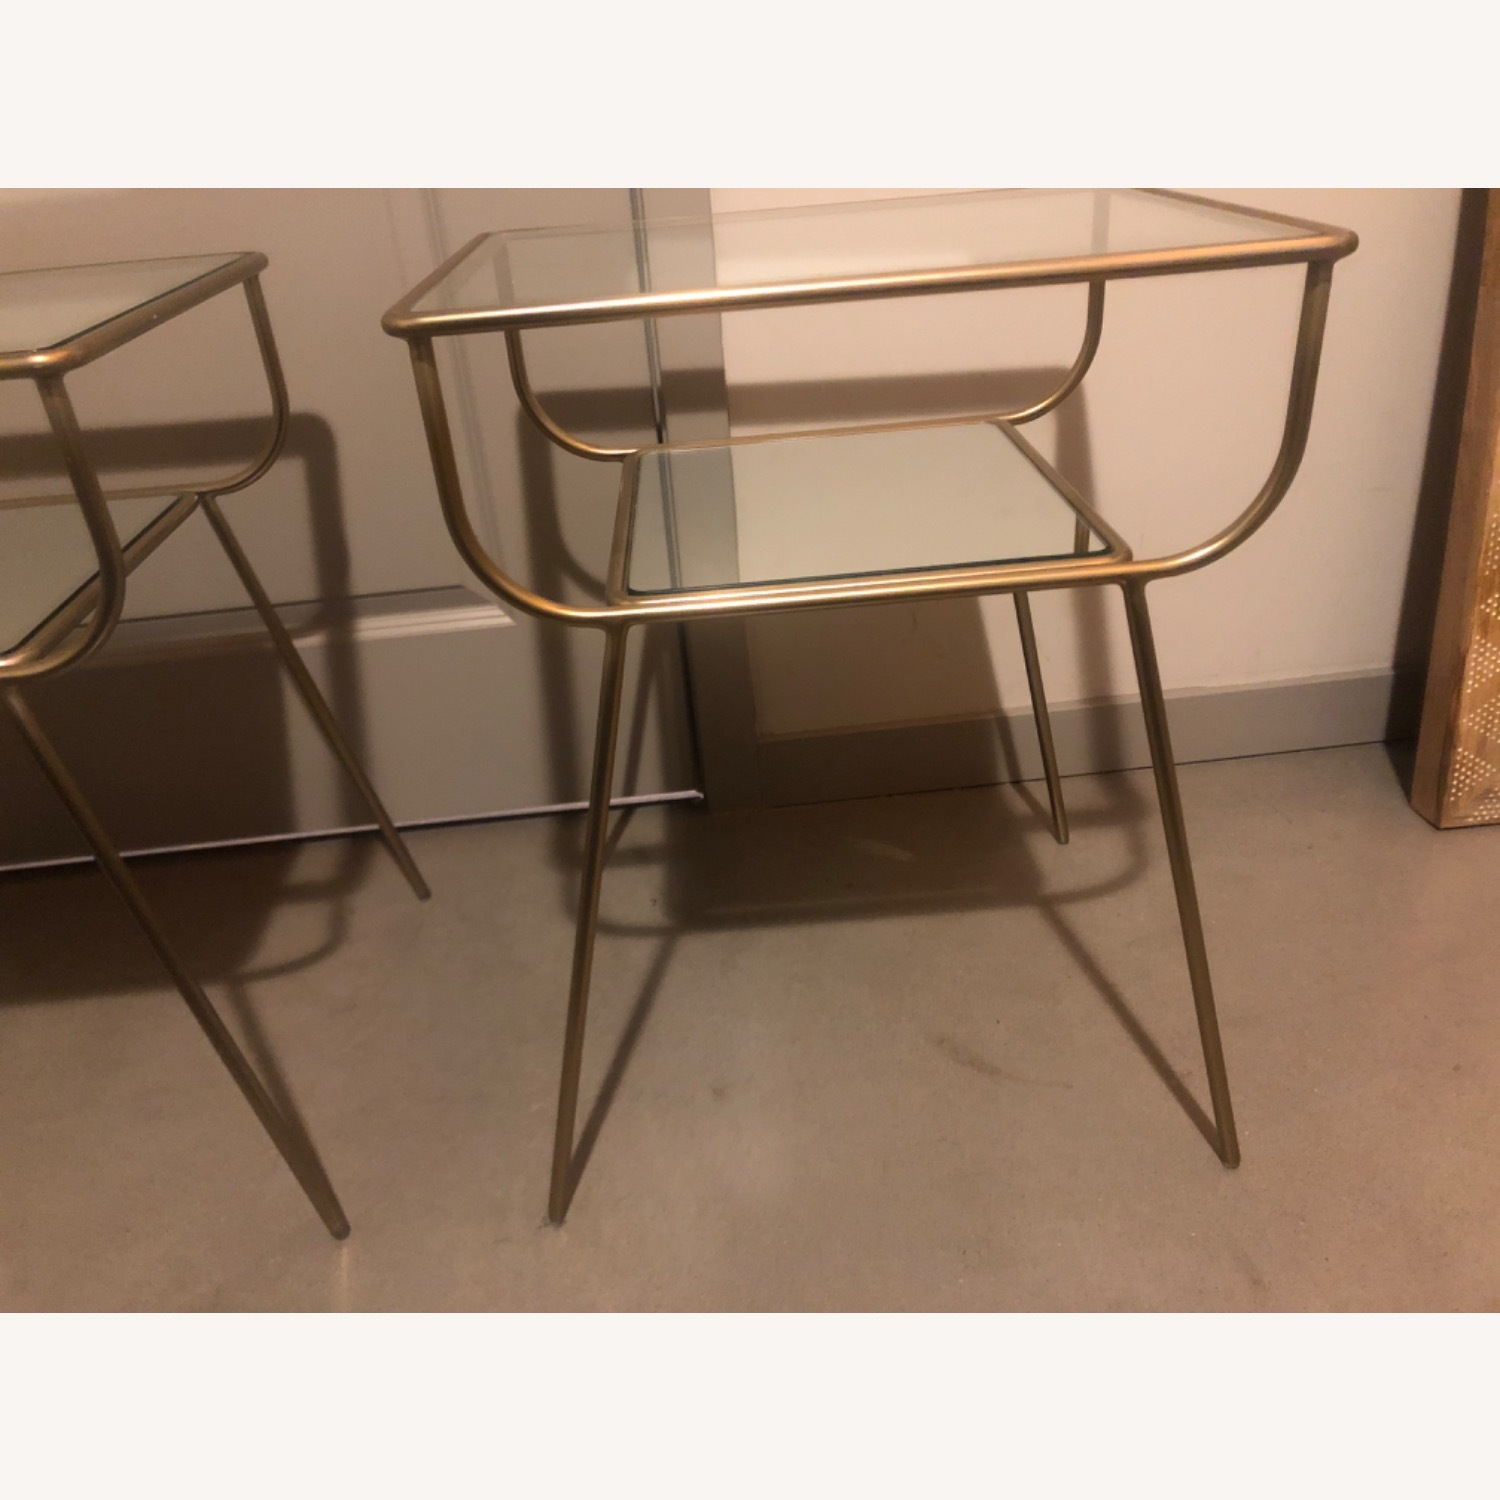 West Elm Curved Terrace Nightstand (Set of 2) - image-1